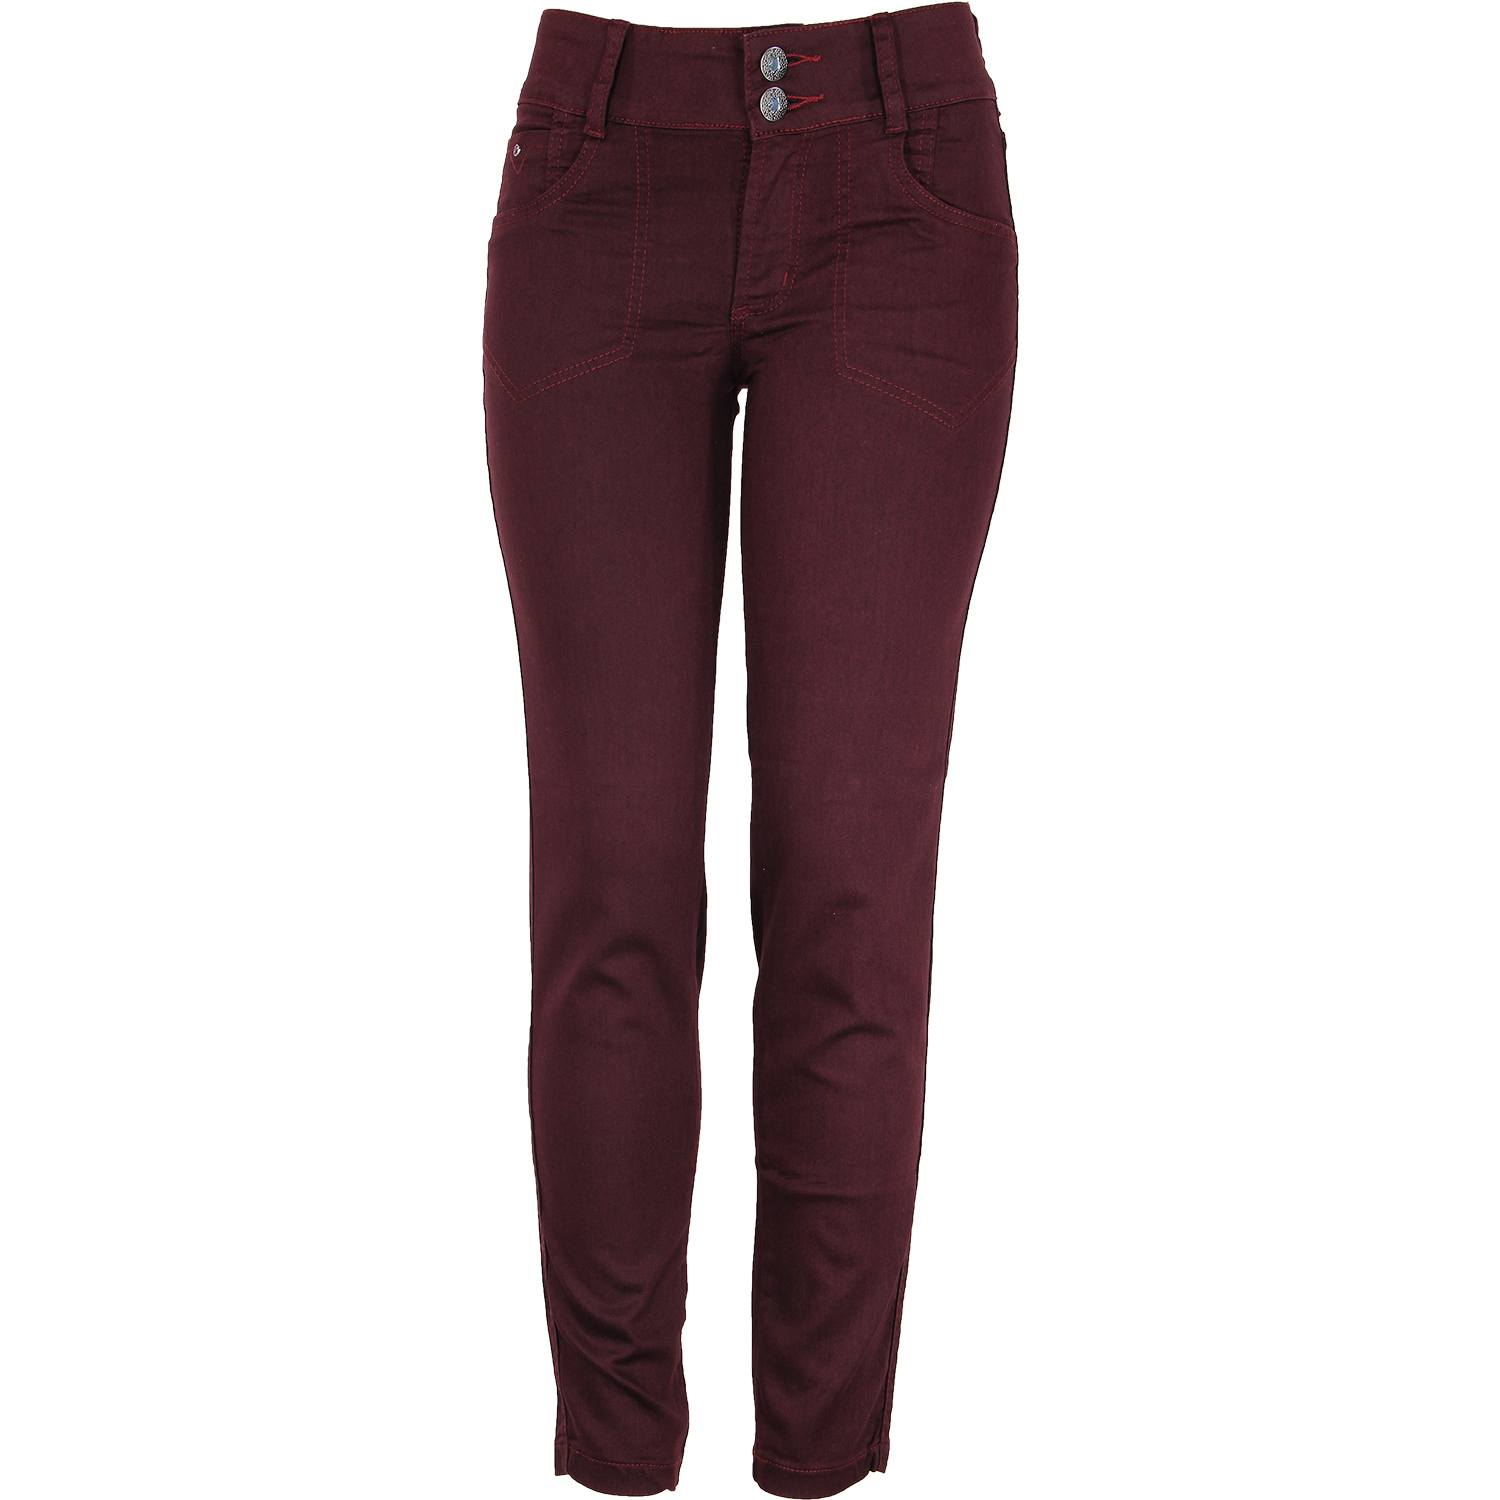 Cigarrete Eruption Jeans Color Andreia [52221VIN]